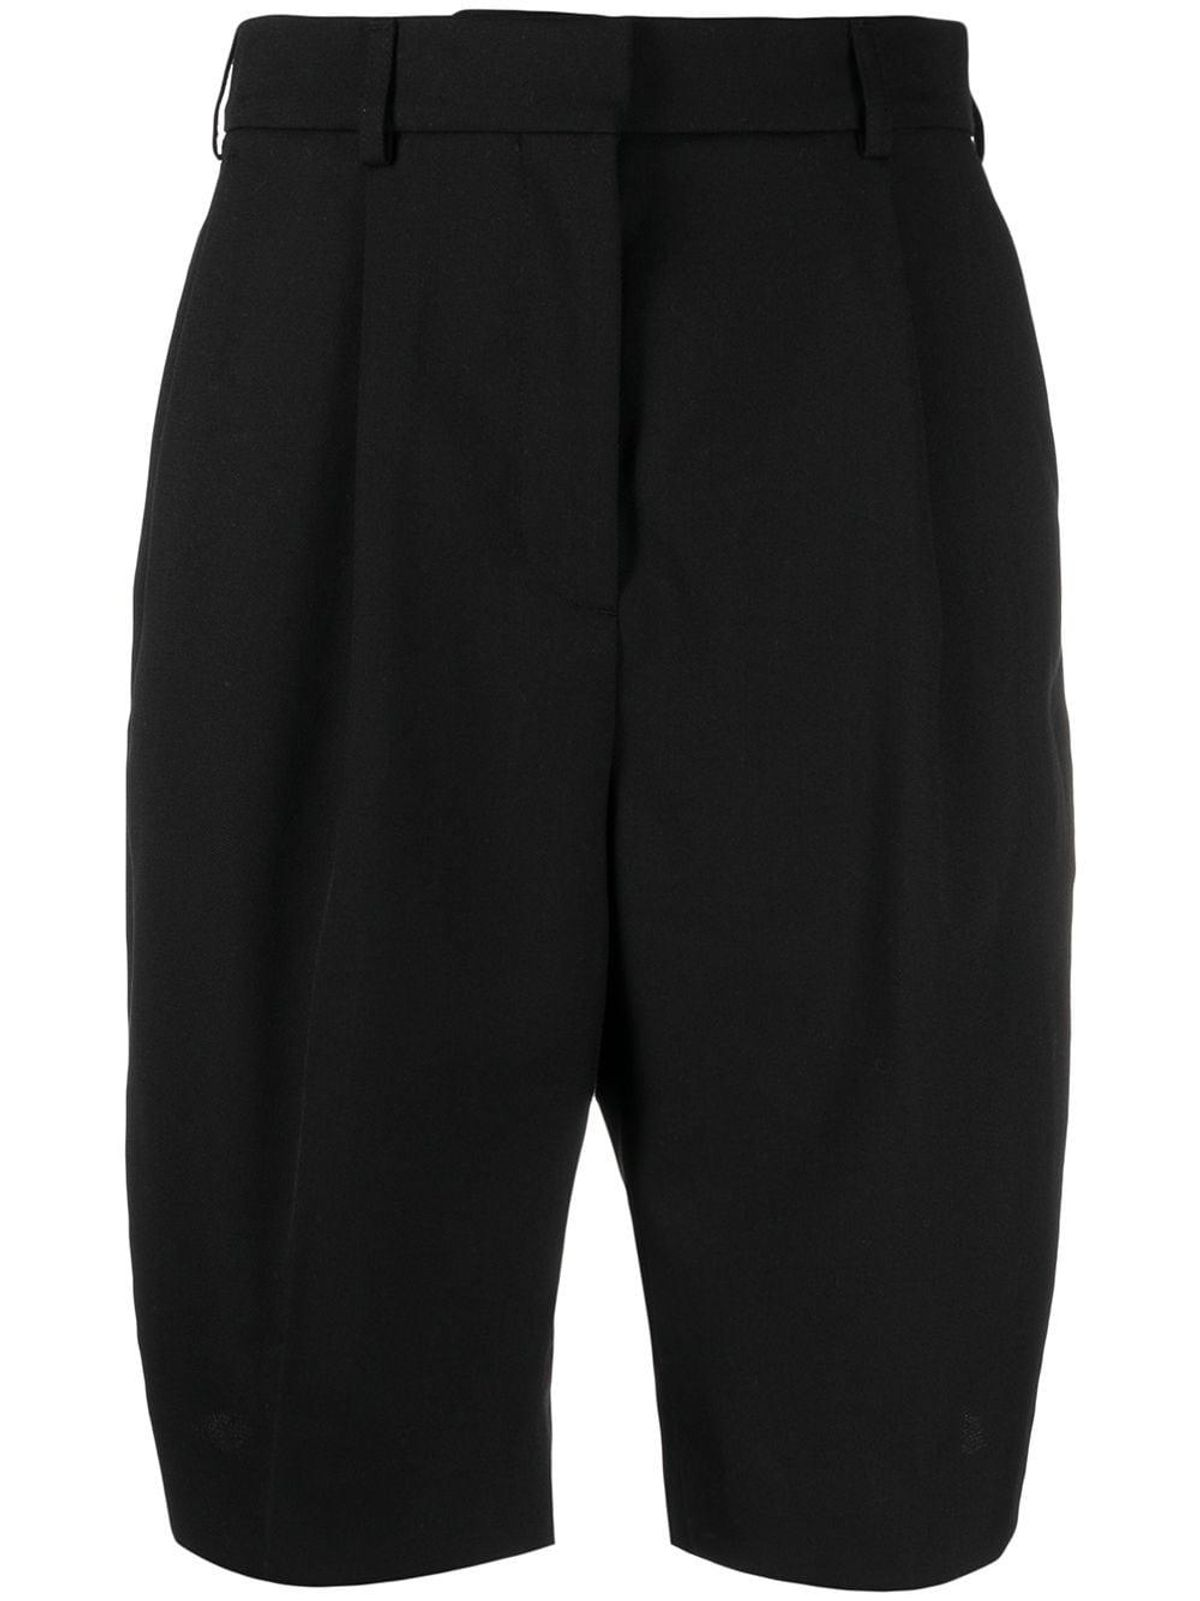 Tailored Knee Length Shorts